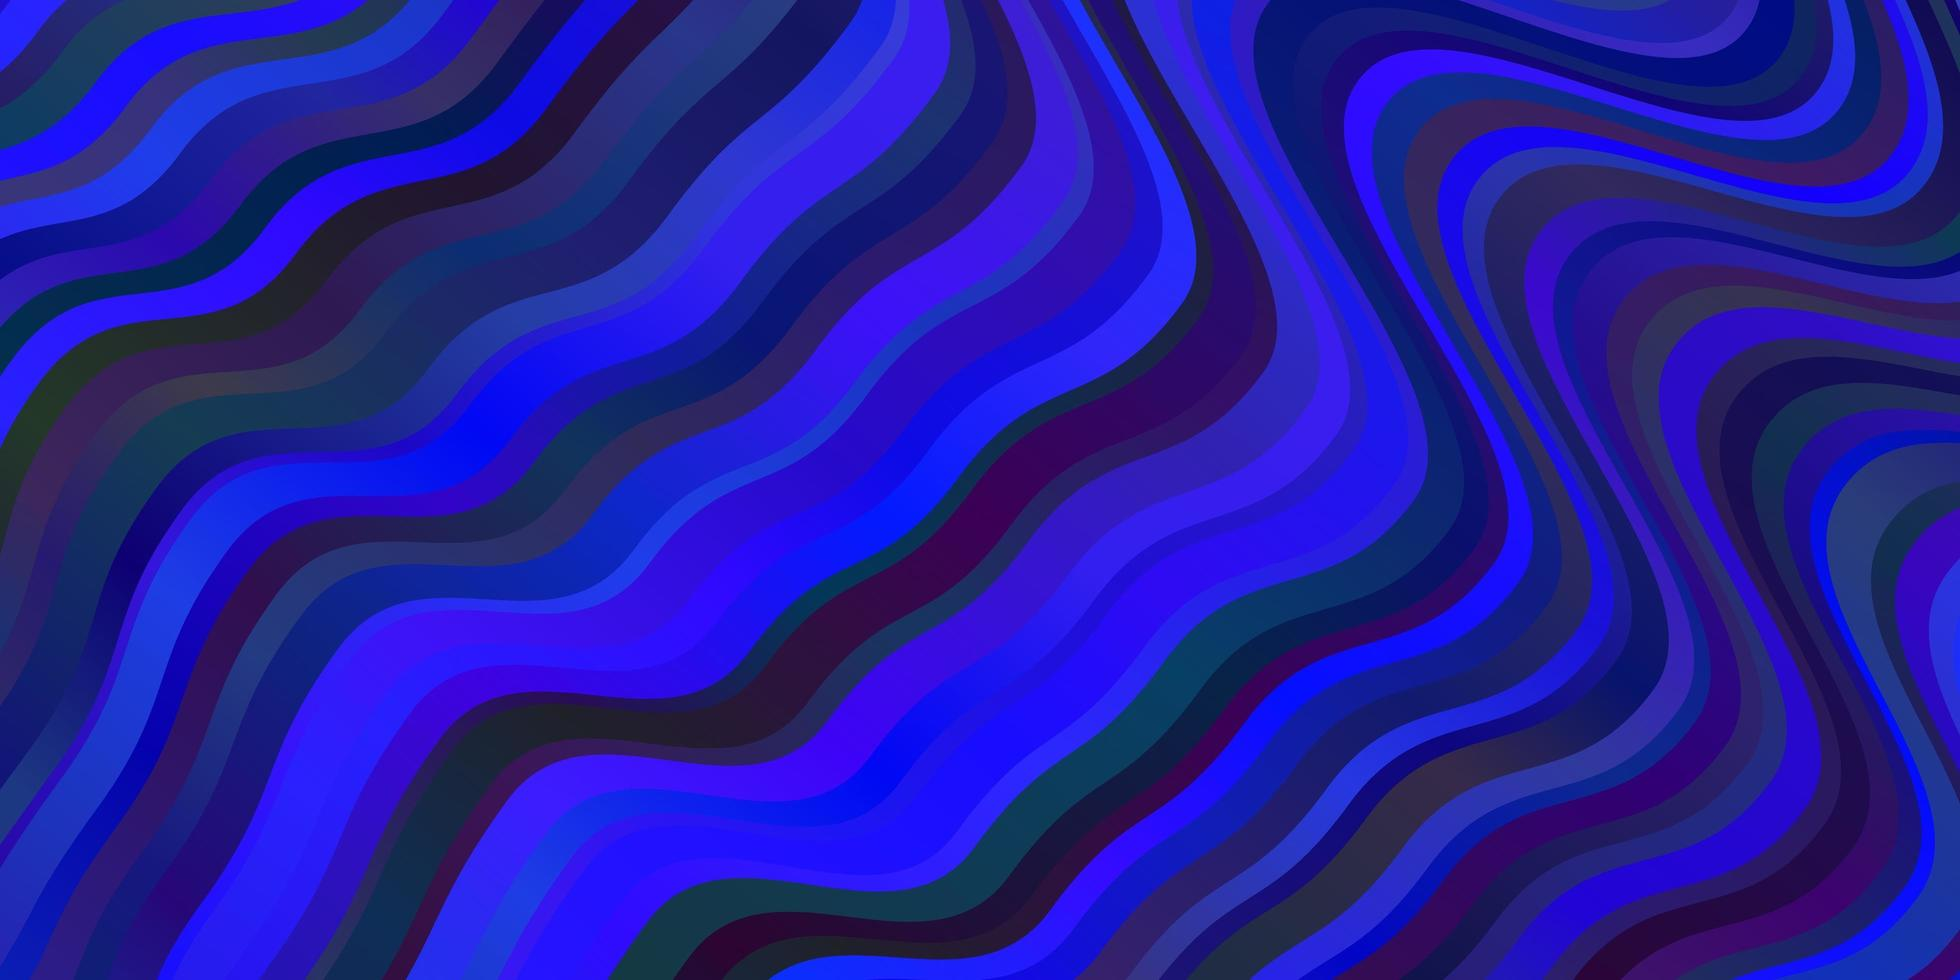 Dark BLUE vector texture with wry lines.